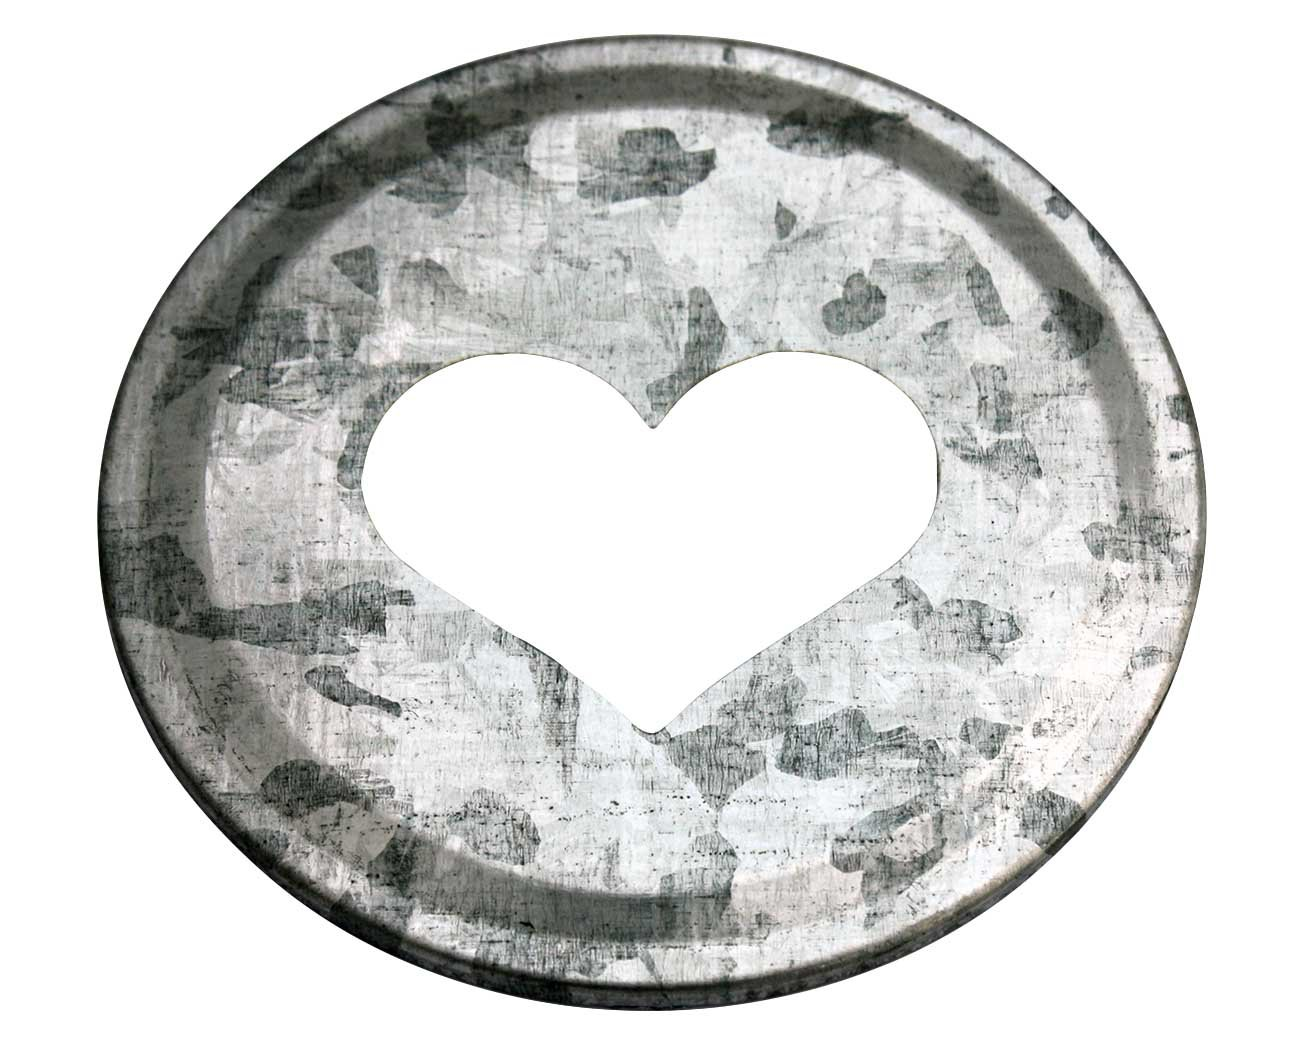 Heart Cutout Galvanized Metal Lid Inserts for Mason Jars (10 Pack, Regular Mouth) Mason Jar Lifestyle